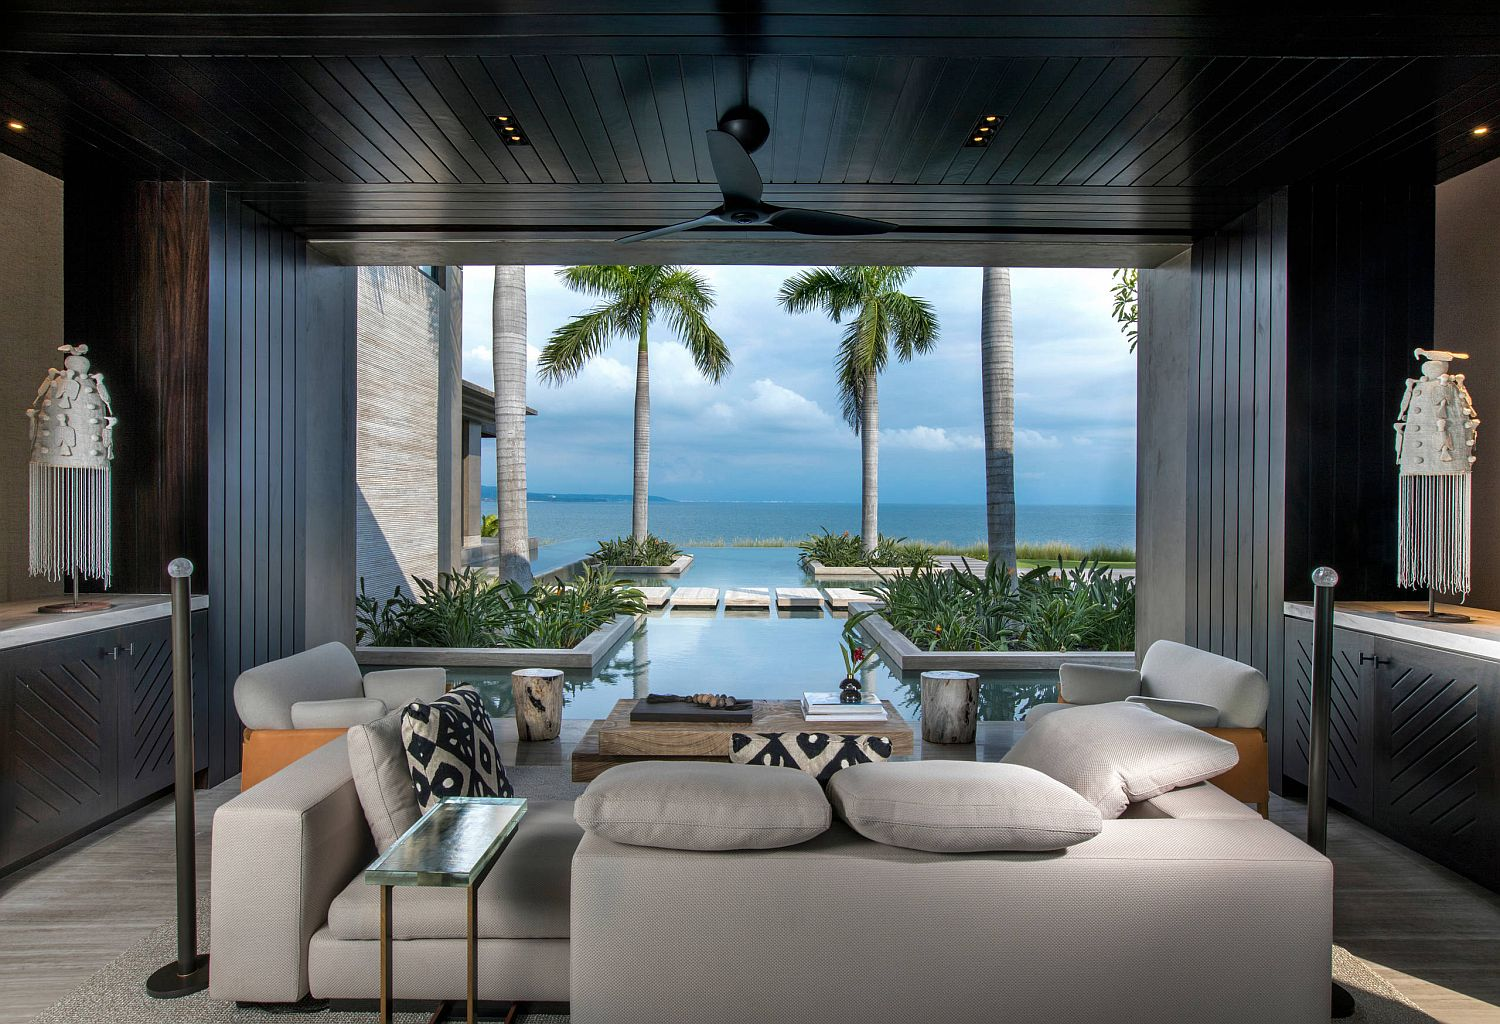 Stunning views, pool and the outdoors become a part of the lovely living room